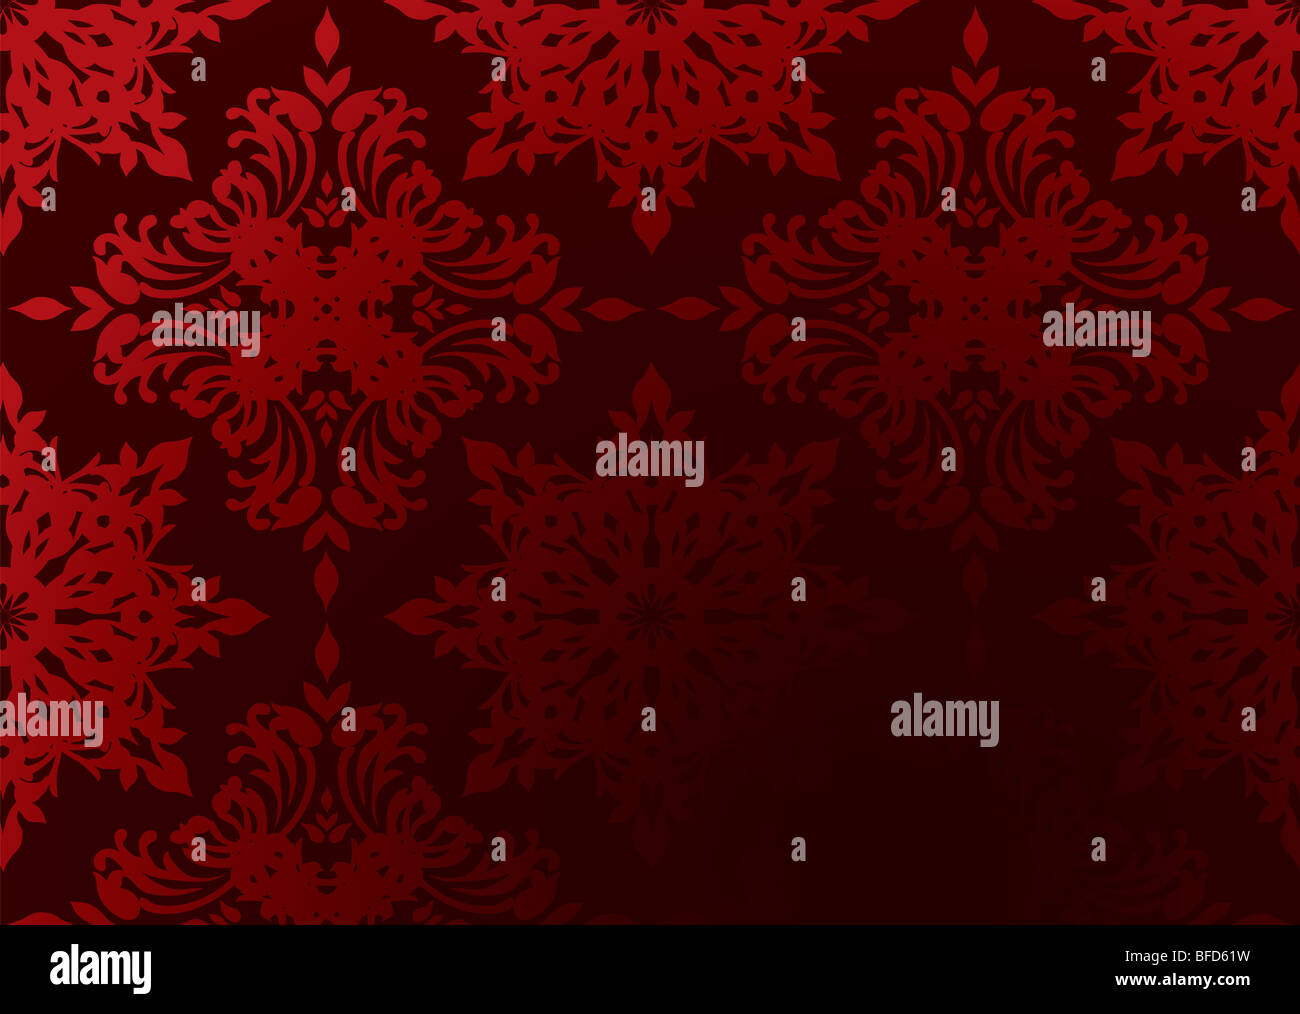 Bright Red Gothic Wallpaper With Gradient Design And Copy Space